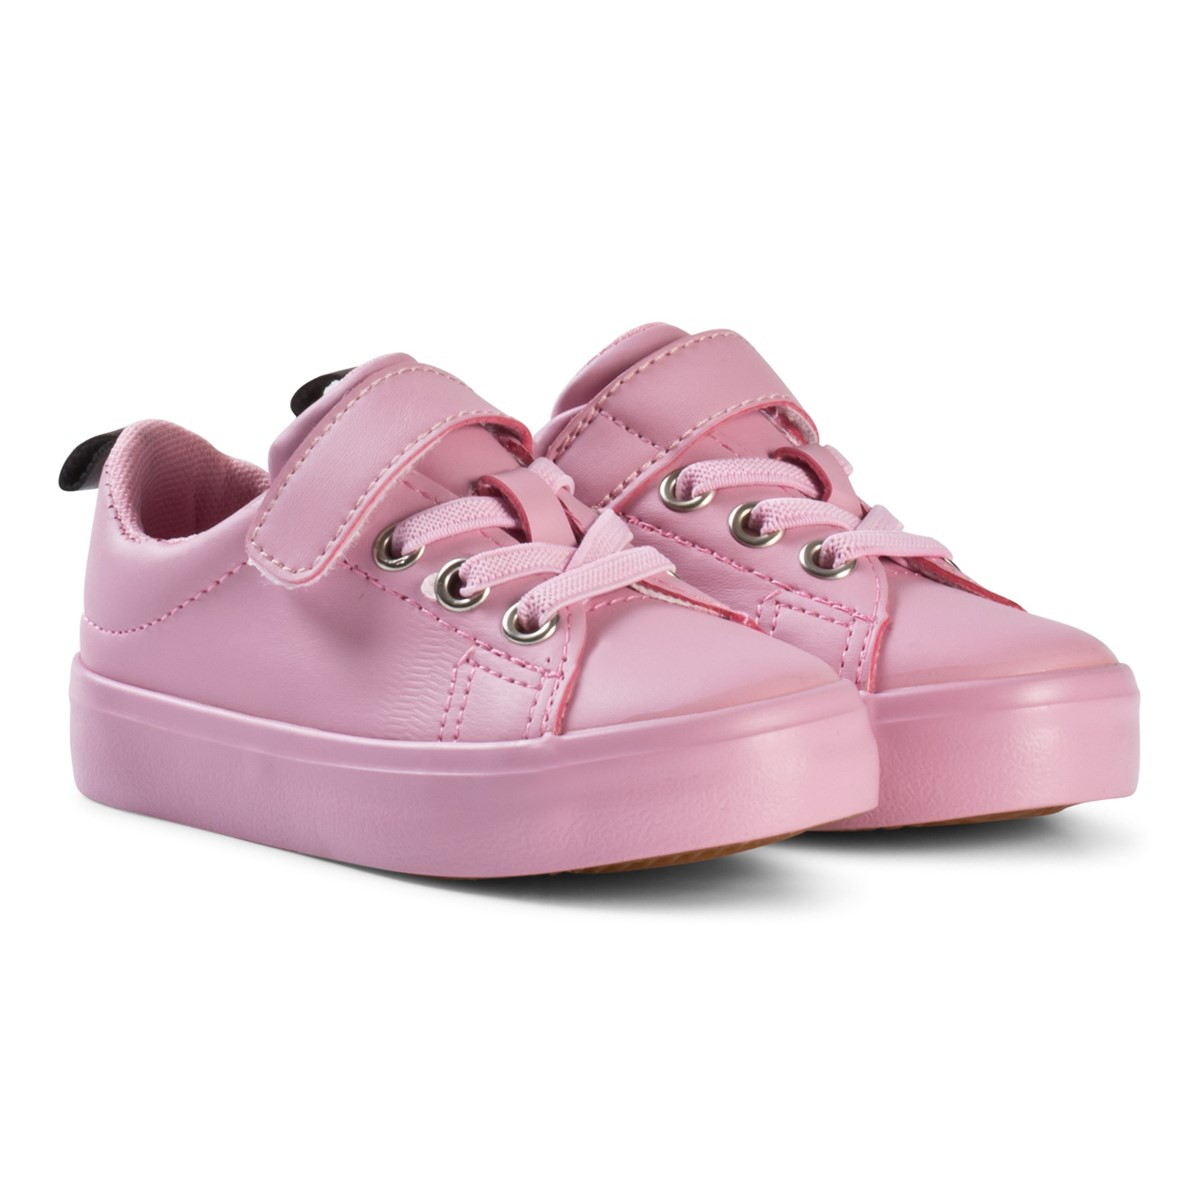 Kuling Pink Lace-up Trainers